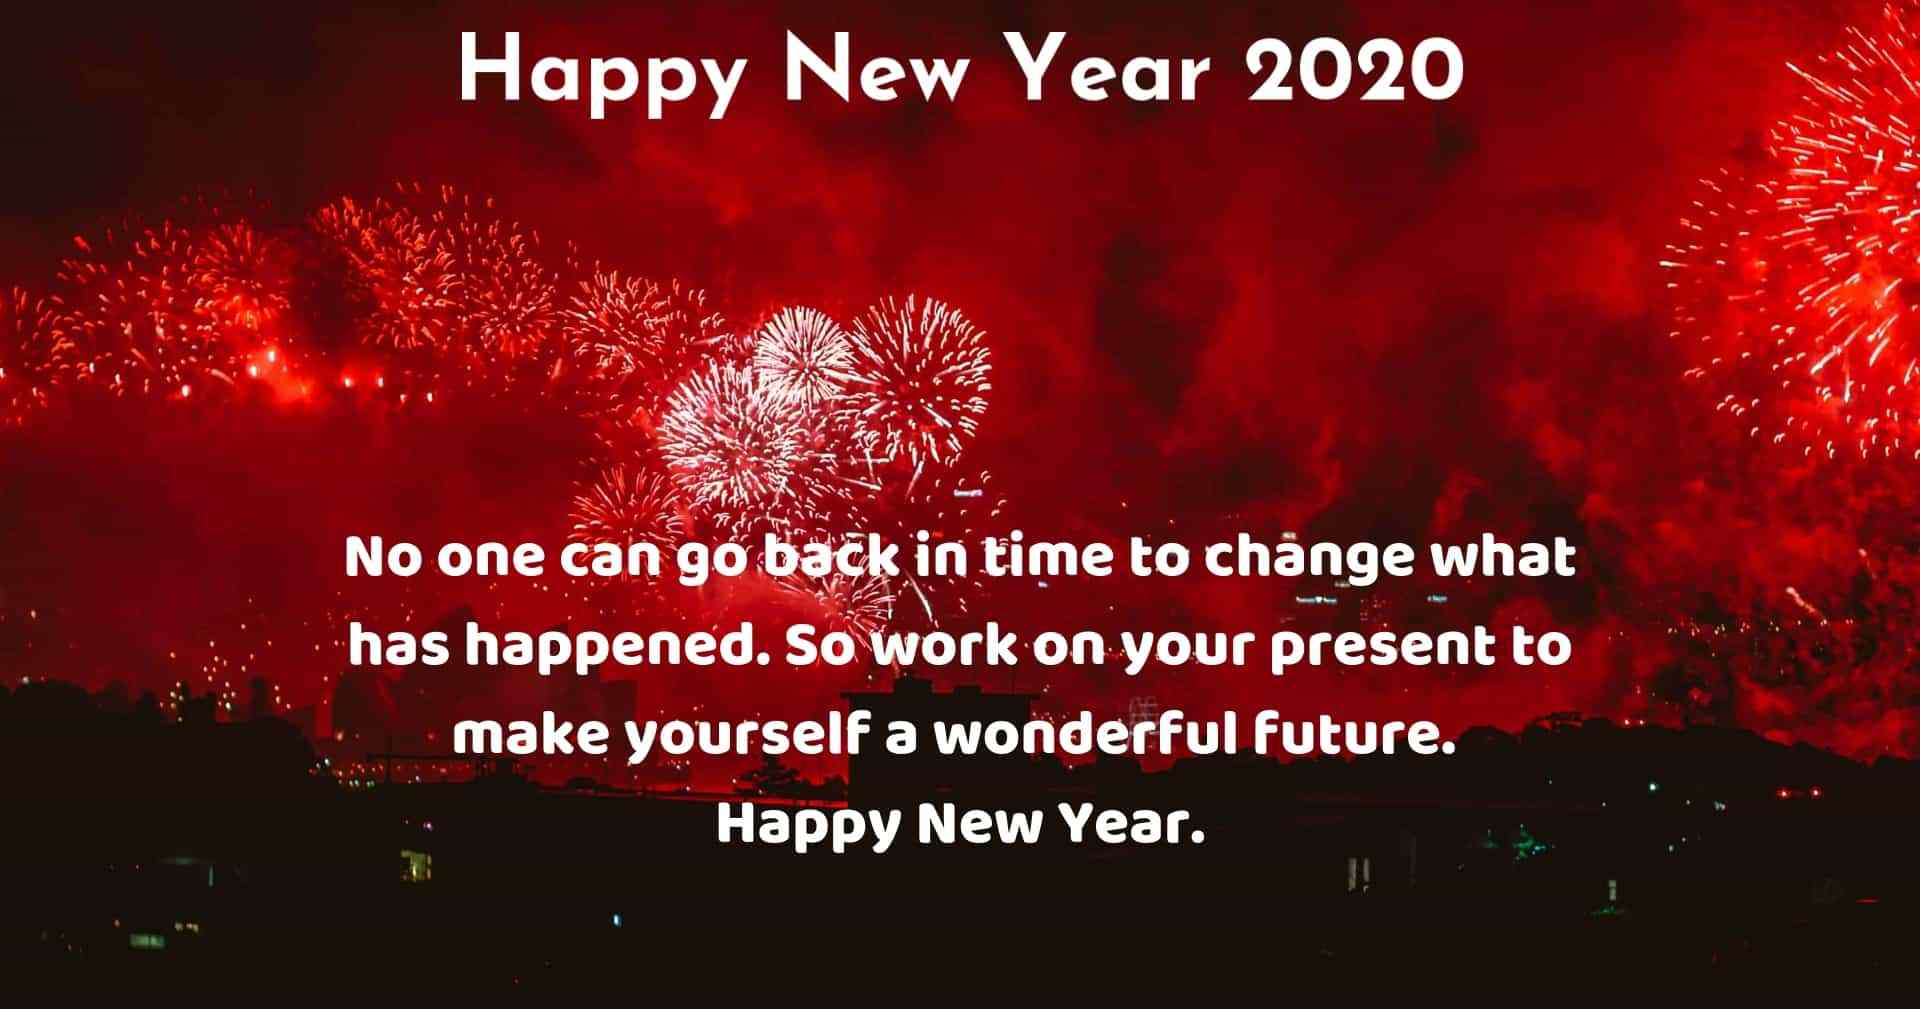 Happy New Year 2020 Wishes for Everyone